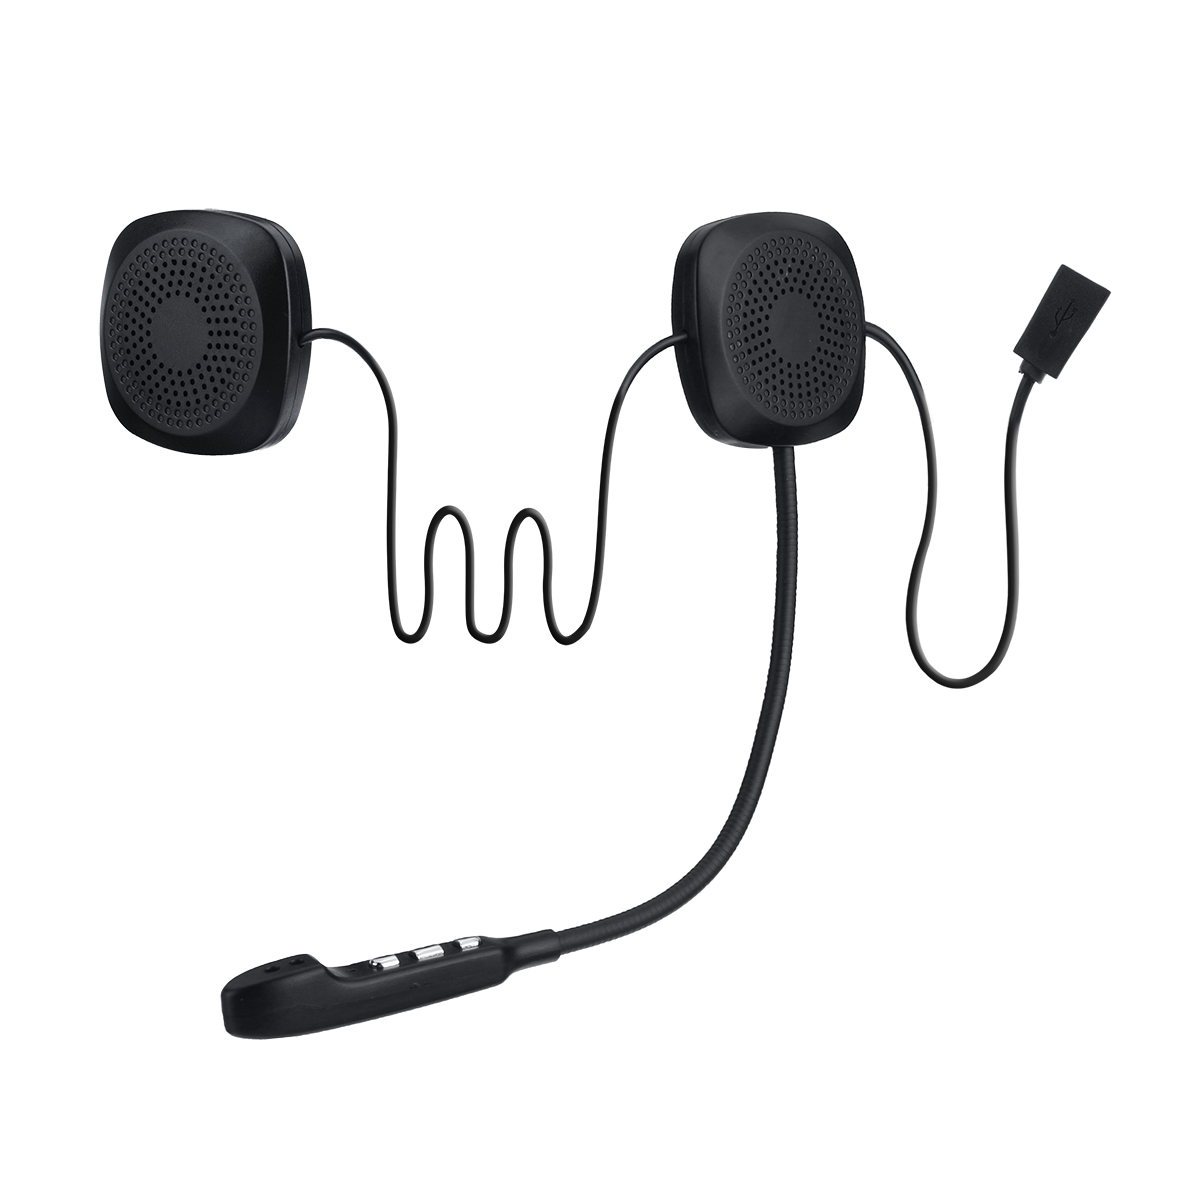 Audew Helmet Headset V4.2-Intercom Moto Bluetooth Hands-Free Waterproof Wireless Anti-Interference title=